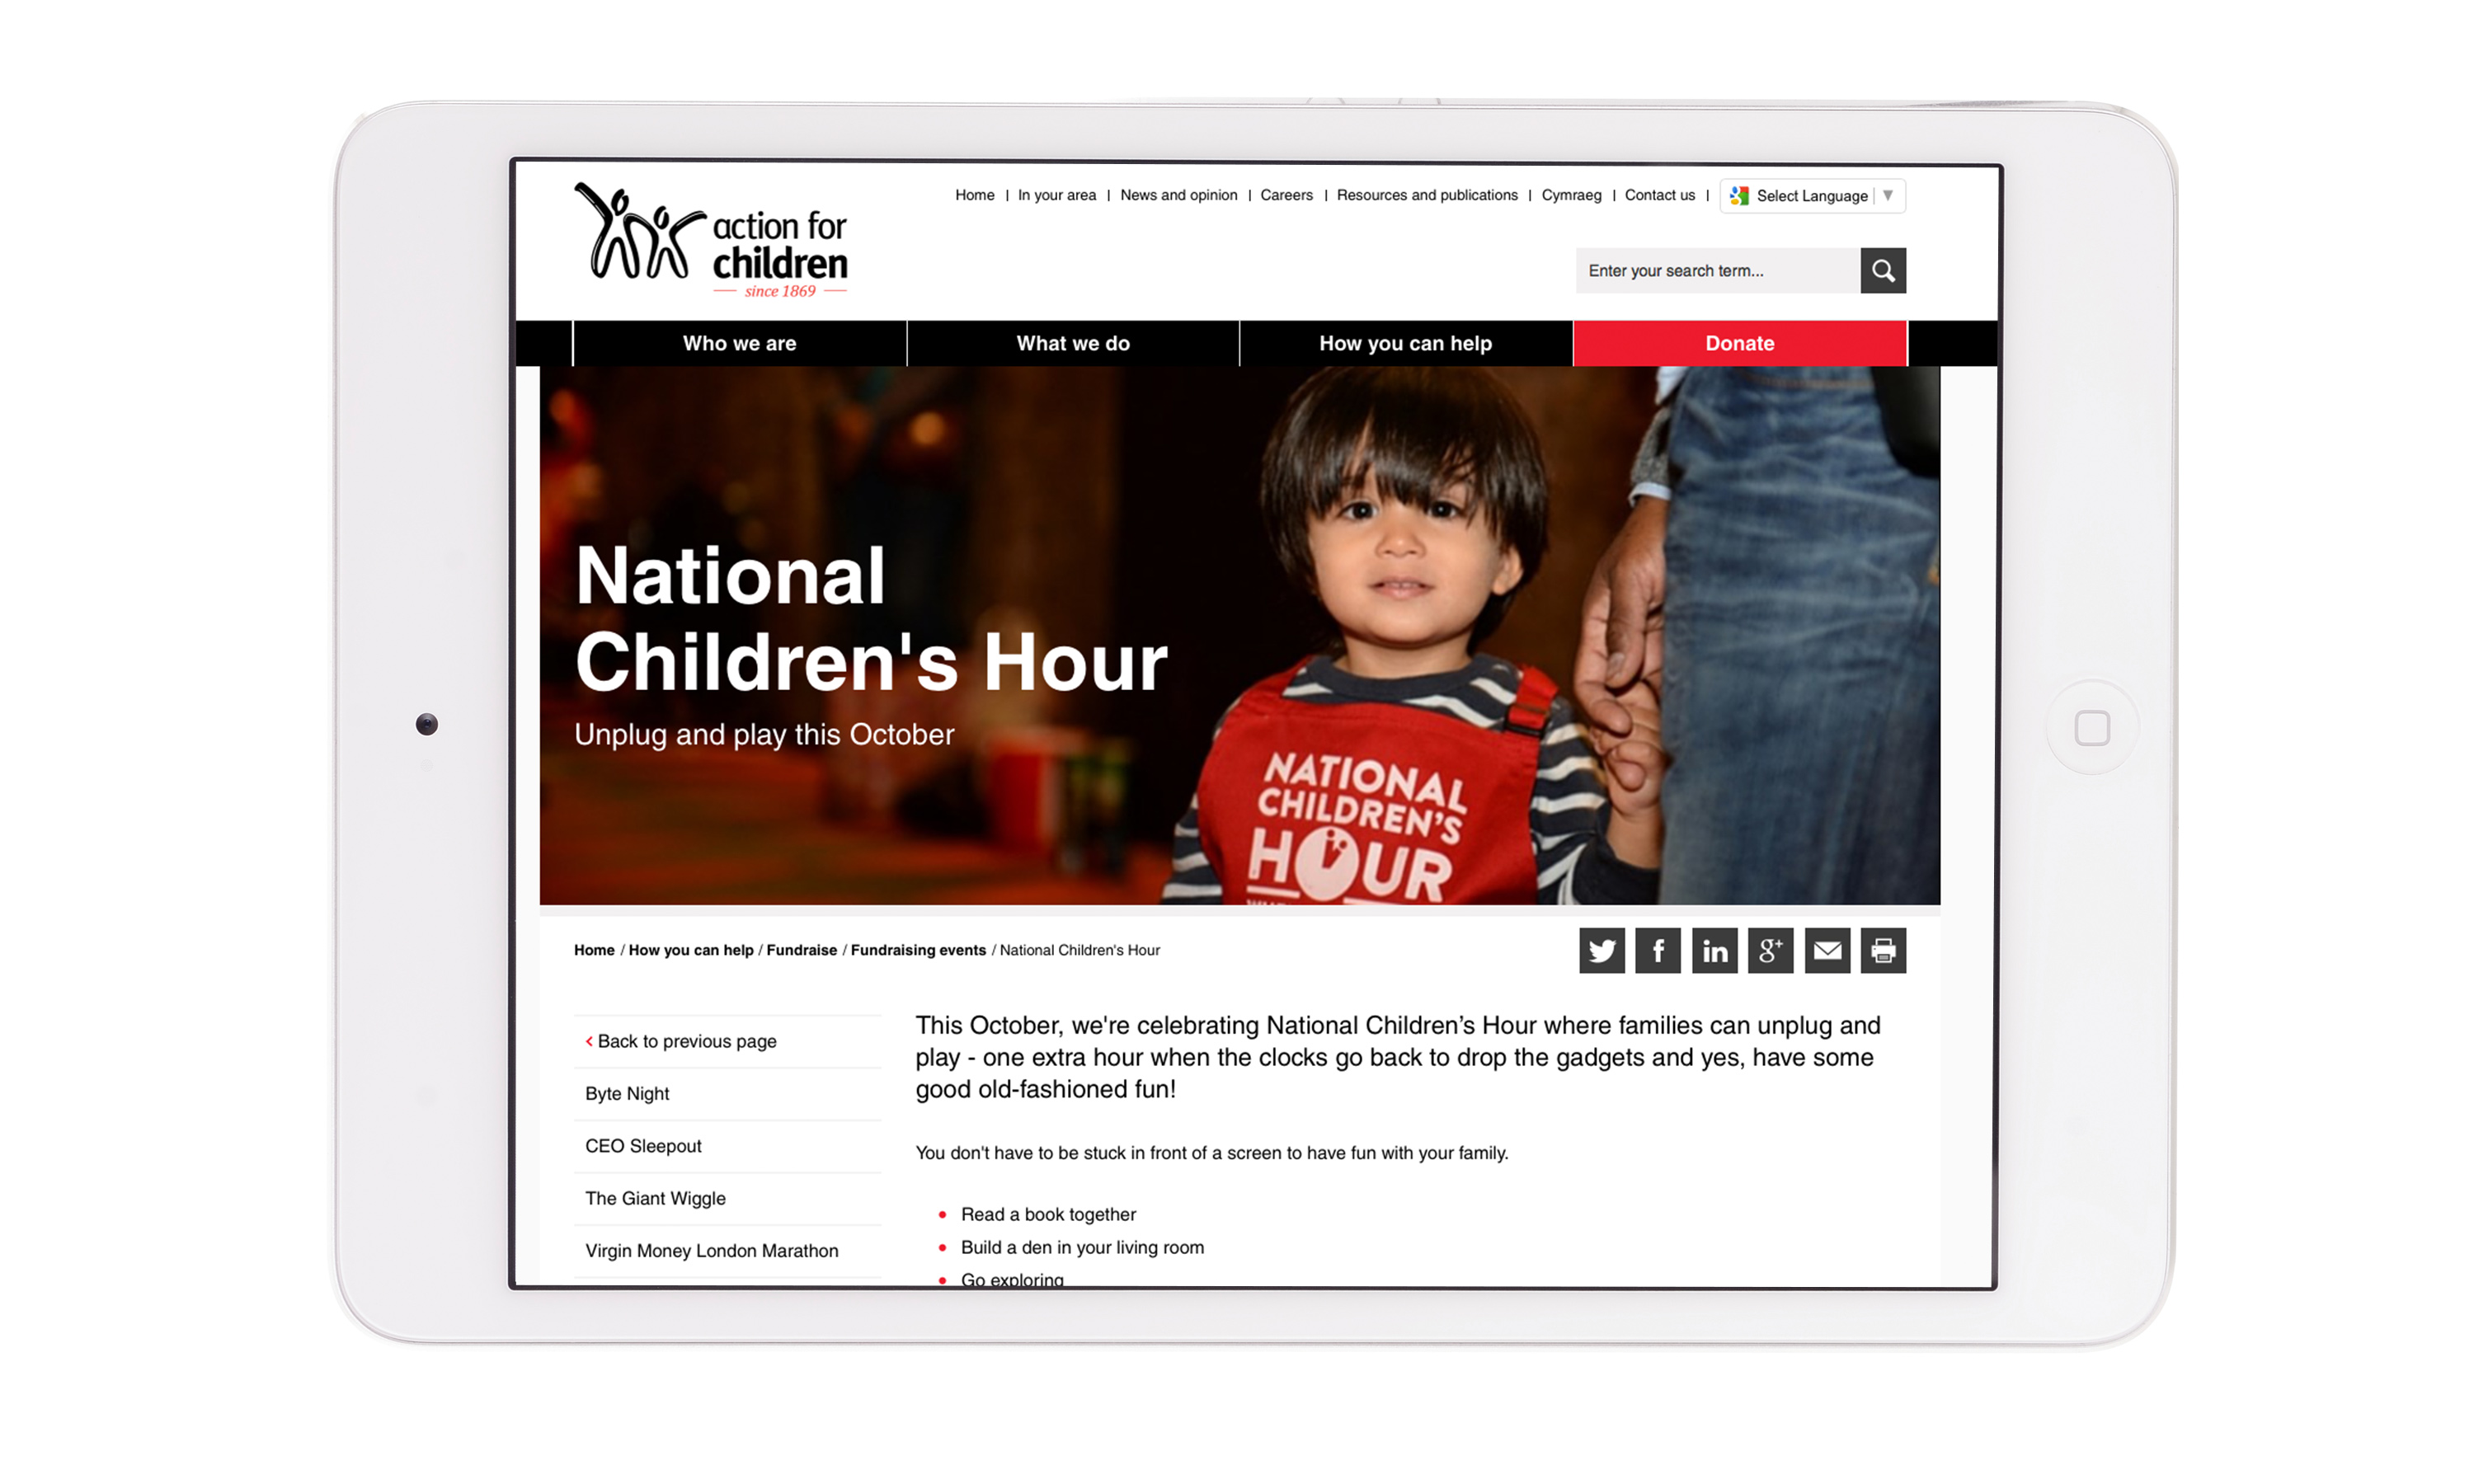 Brand campaign by Neon - designed by Dana Robertson - Charity sector branding - Action for children - National Children's Hour campaign - website detail featuring child with an apron with National Children's Hour logo on it